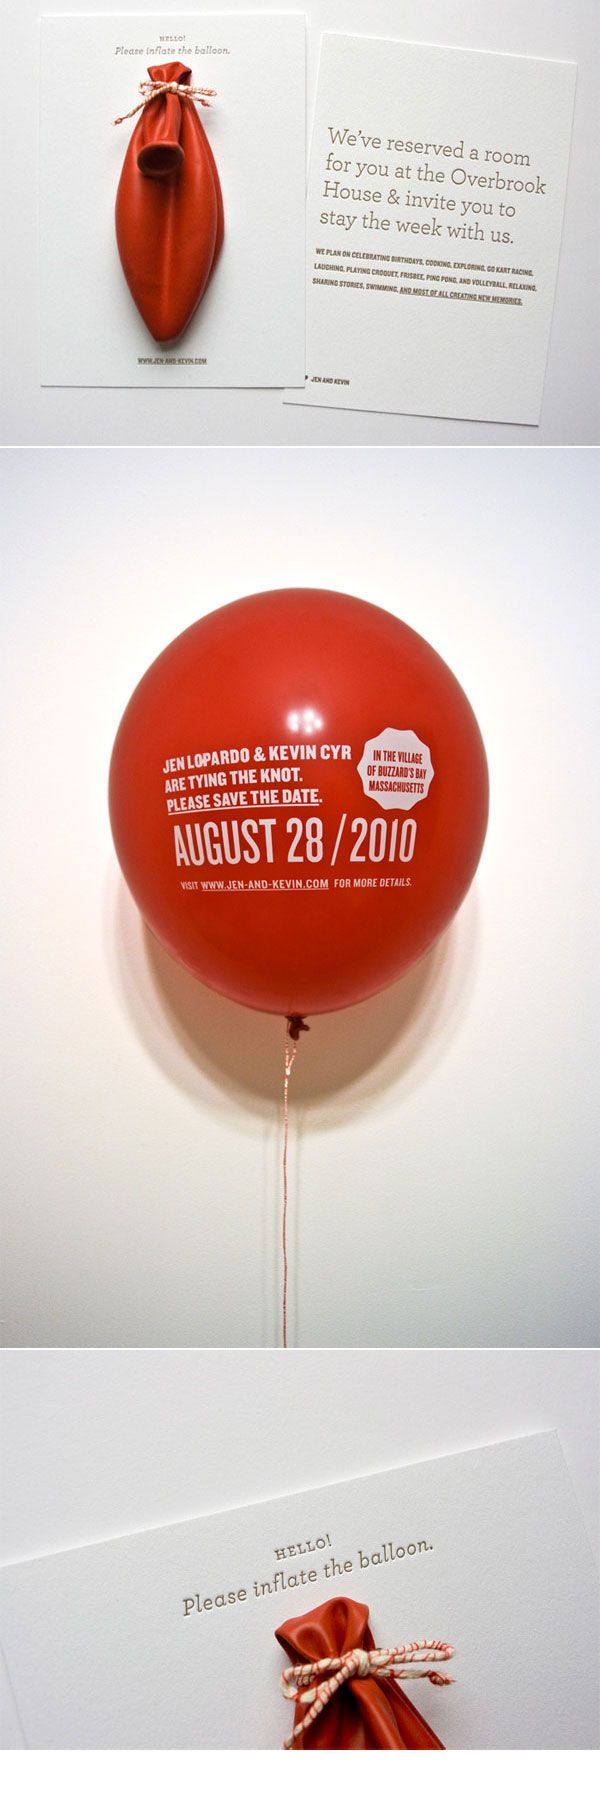 What a cute invitation idea, printed balloons, inflate for details.